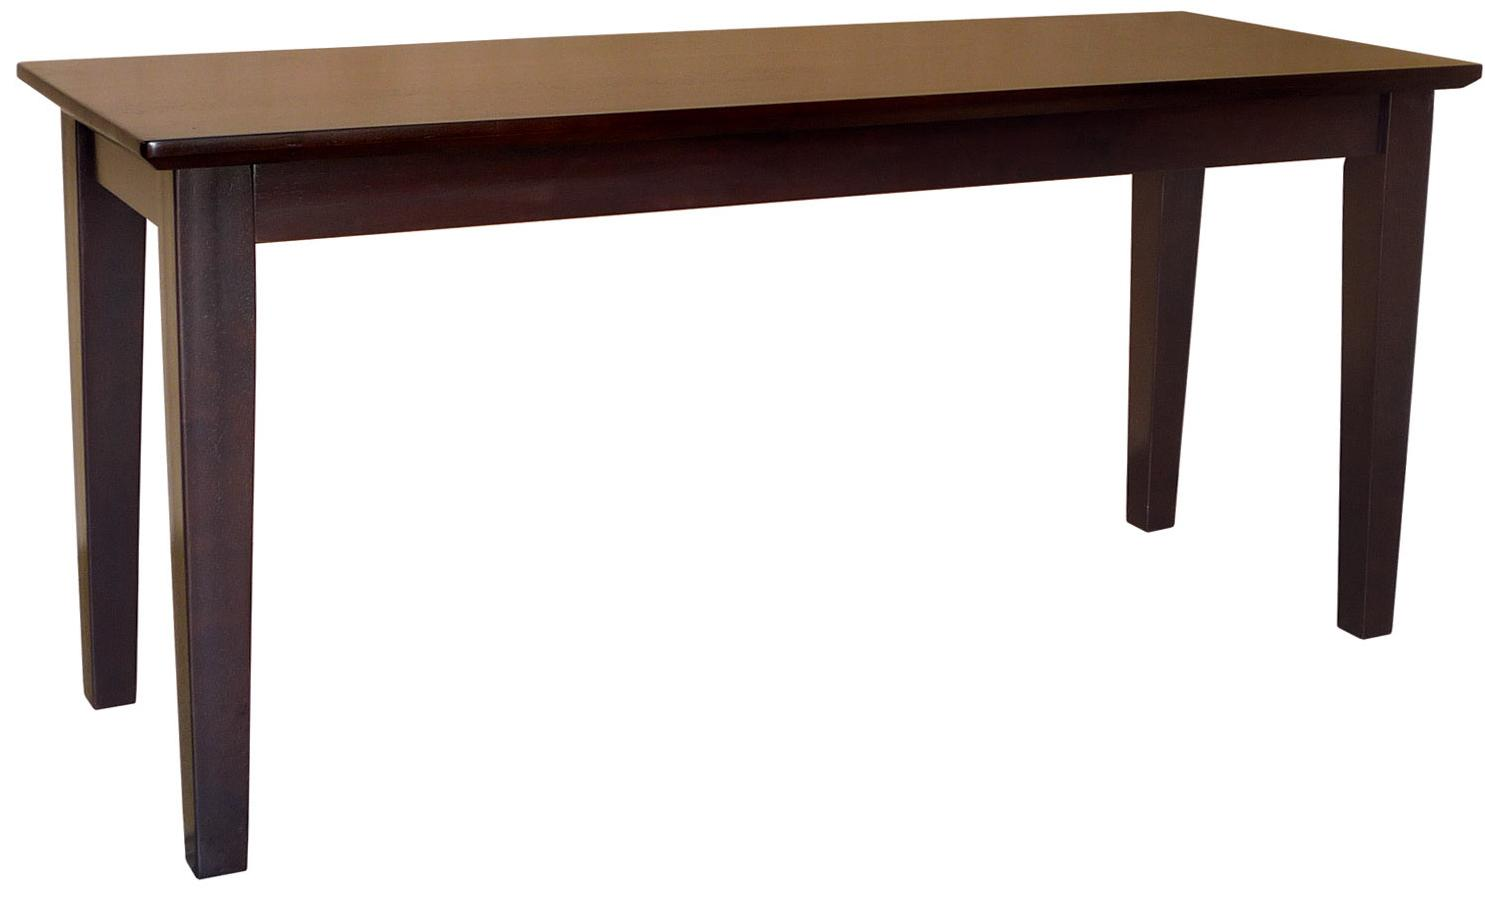 John Thomas Dining Essentials Contemporary Dining Bench - Item Number: BE15-39